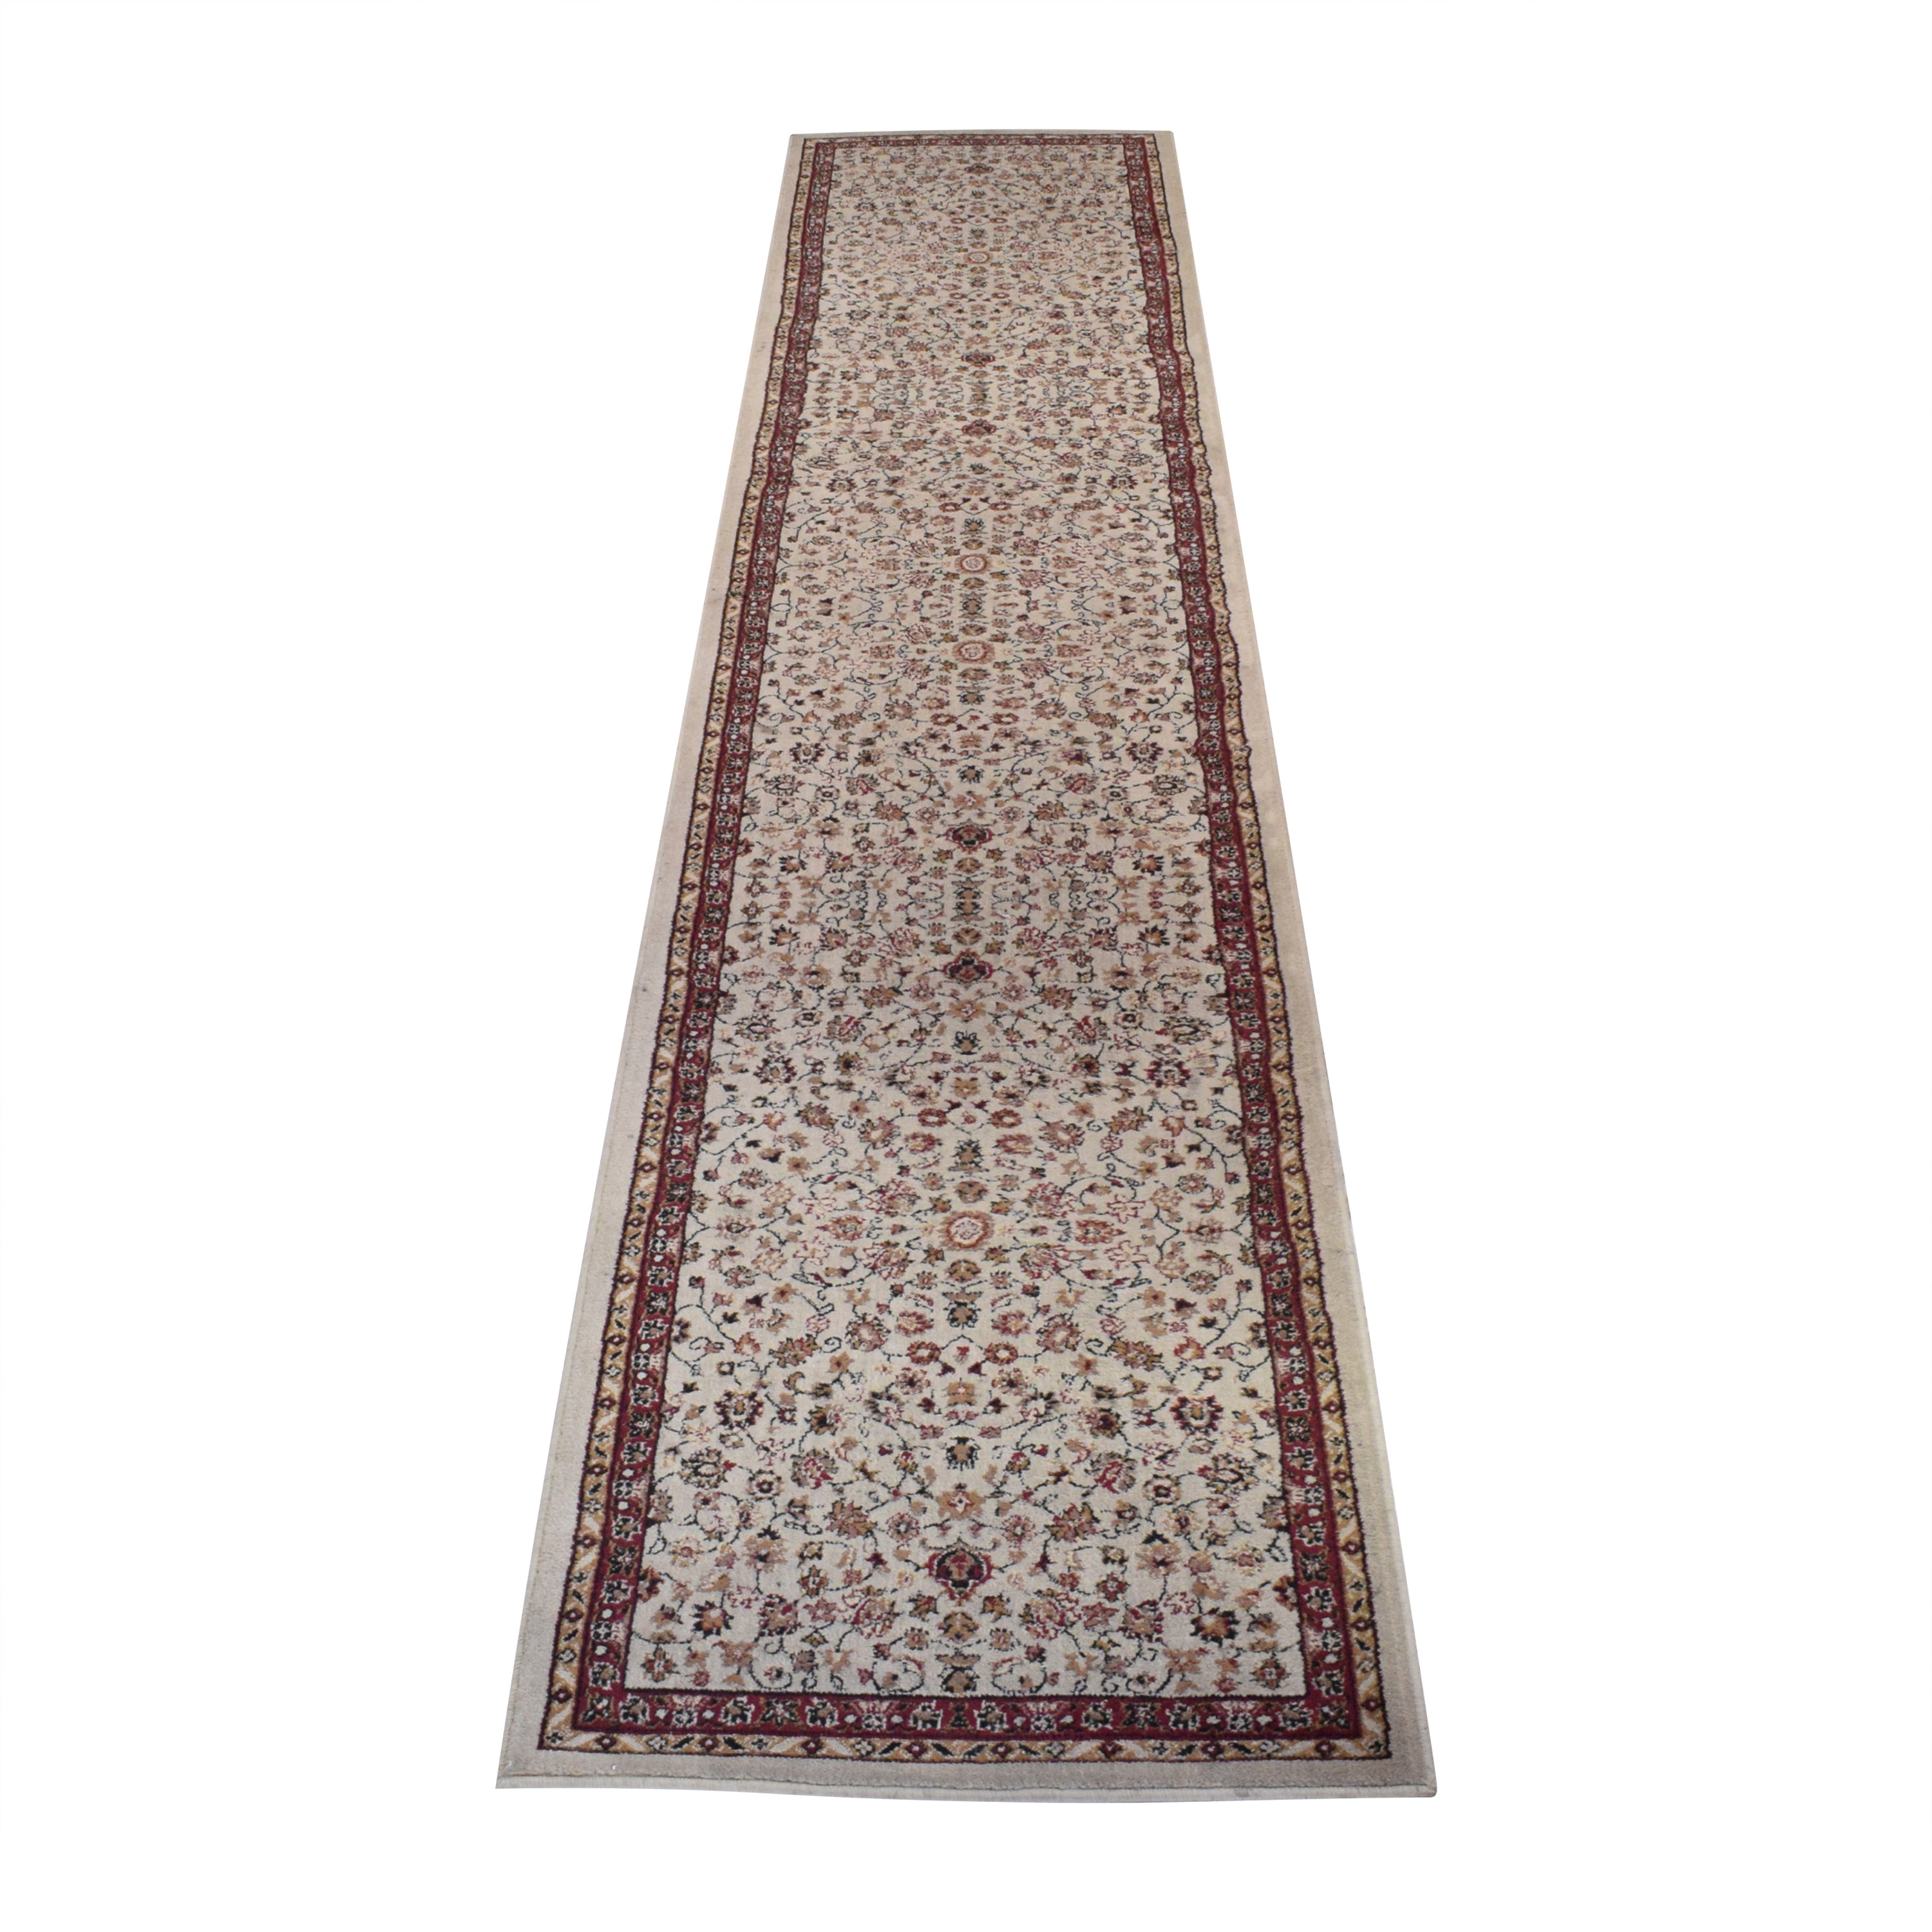 Long Hallway Runner Rug mutlicolored